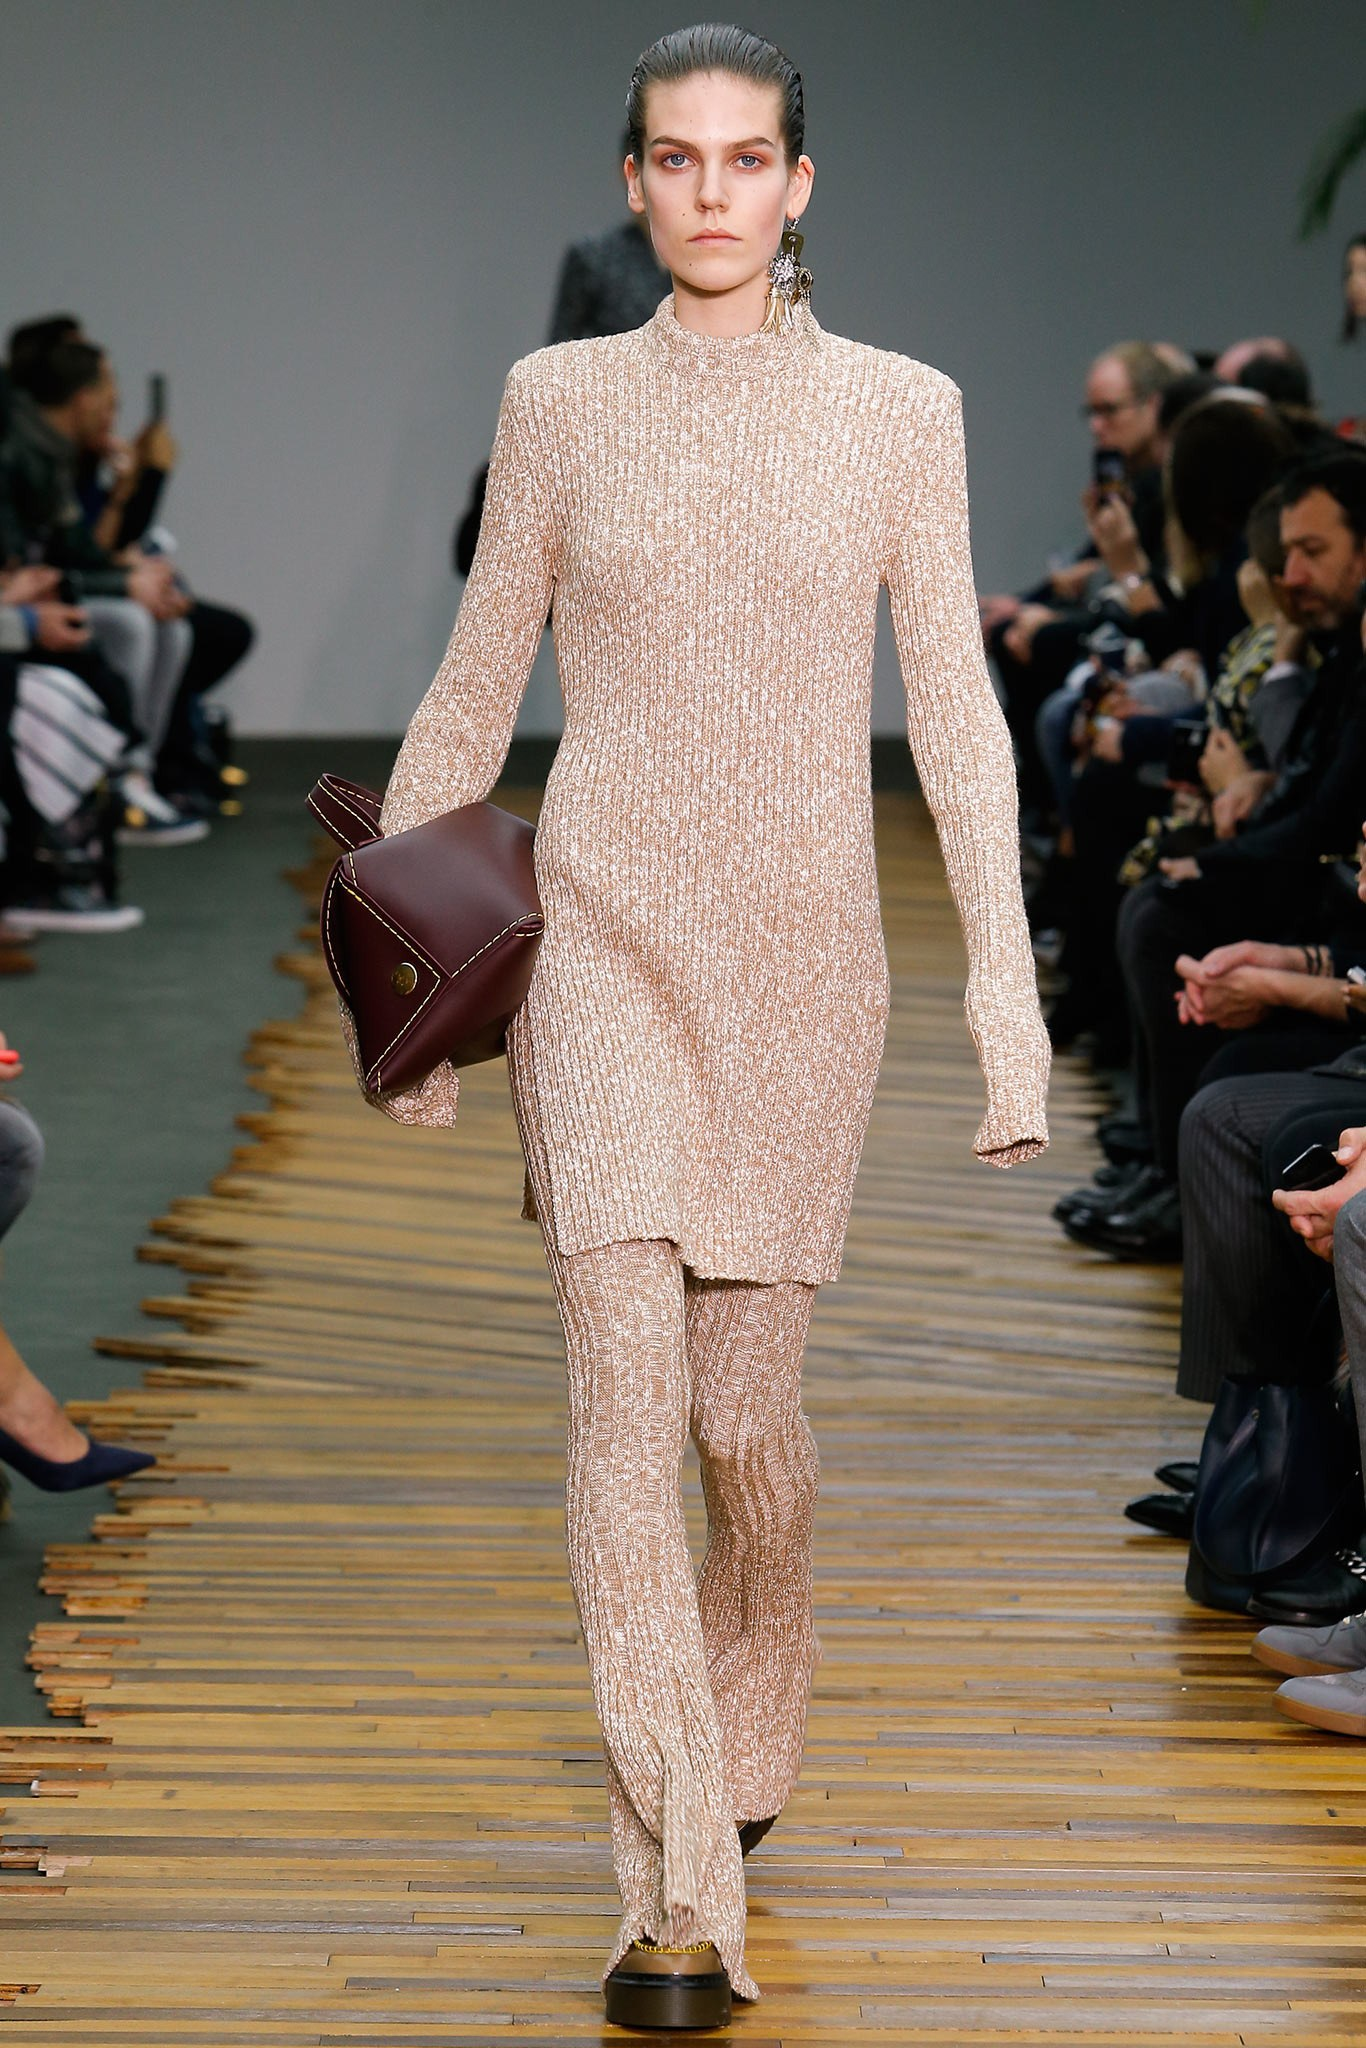 The long, stretchy silhouette has created an unforgettable trend and inspired everybody from high-end designers such as Victoria Beckham to high street brands such as Zara, Mango.